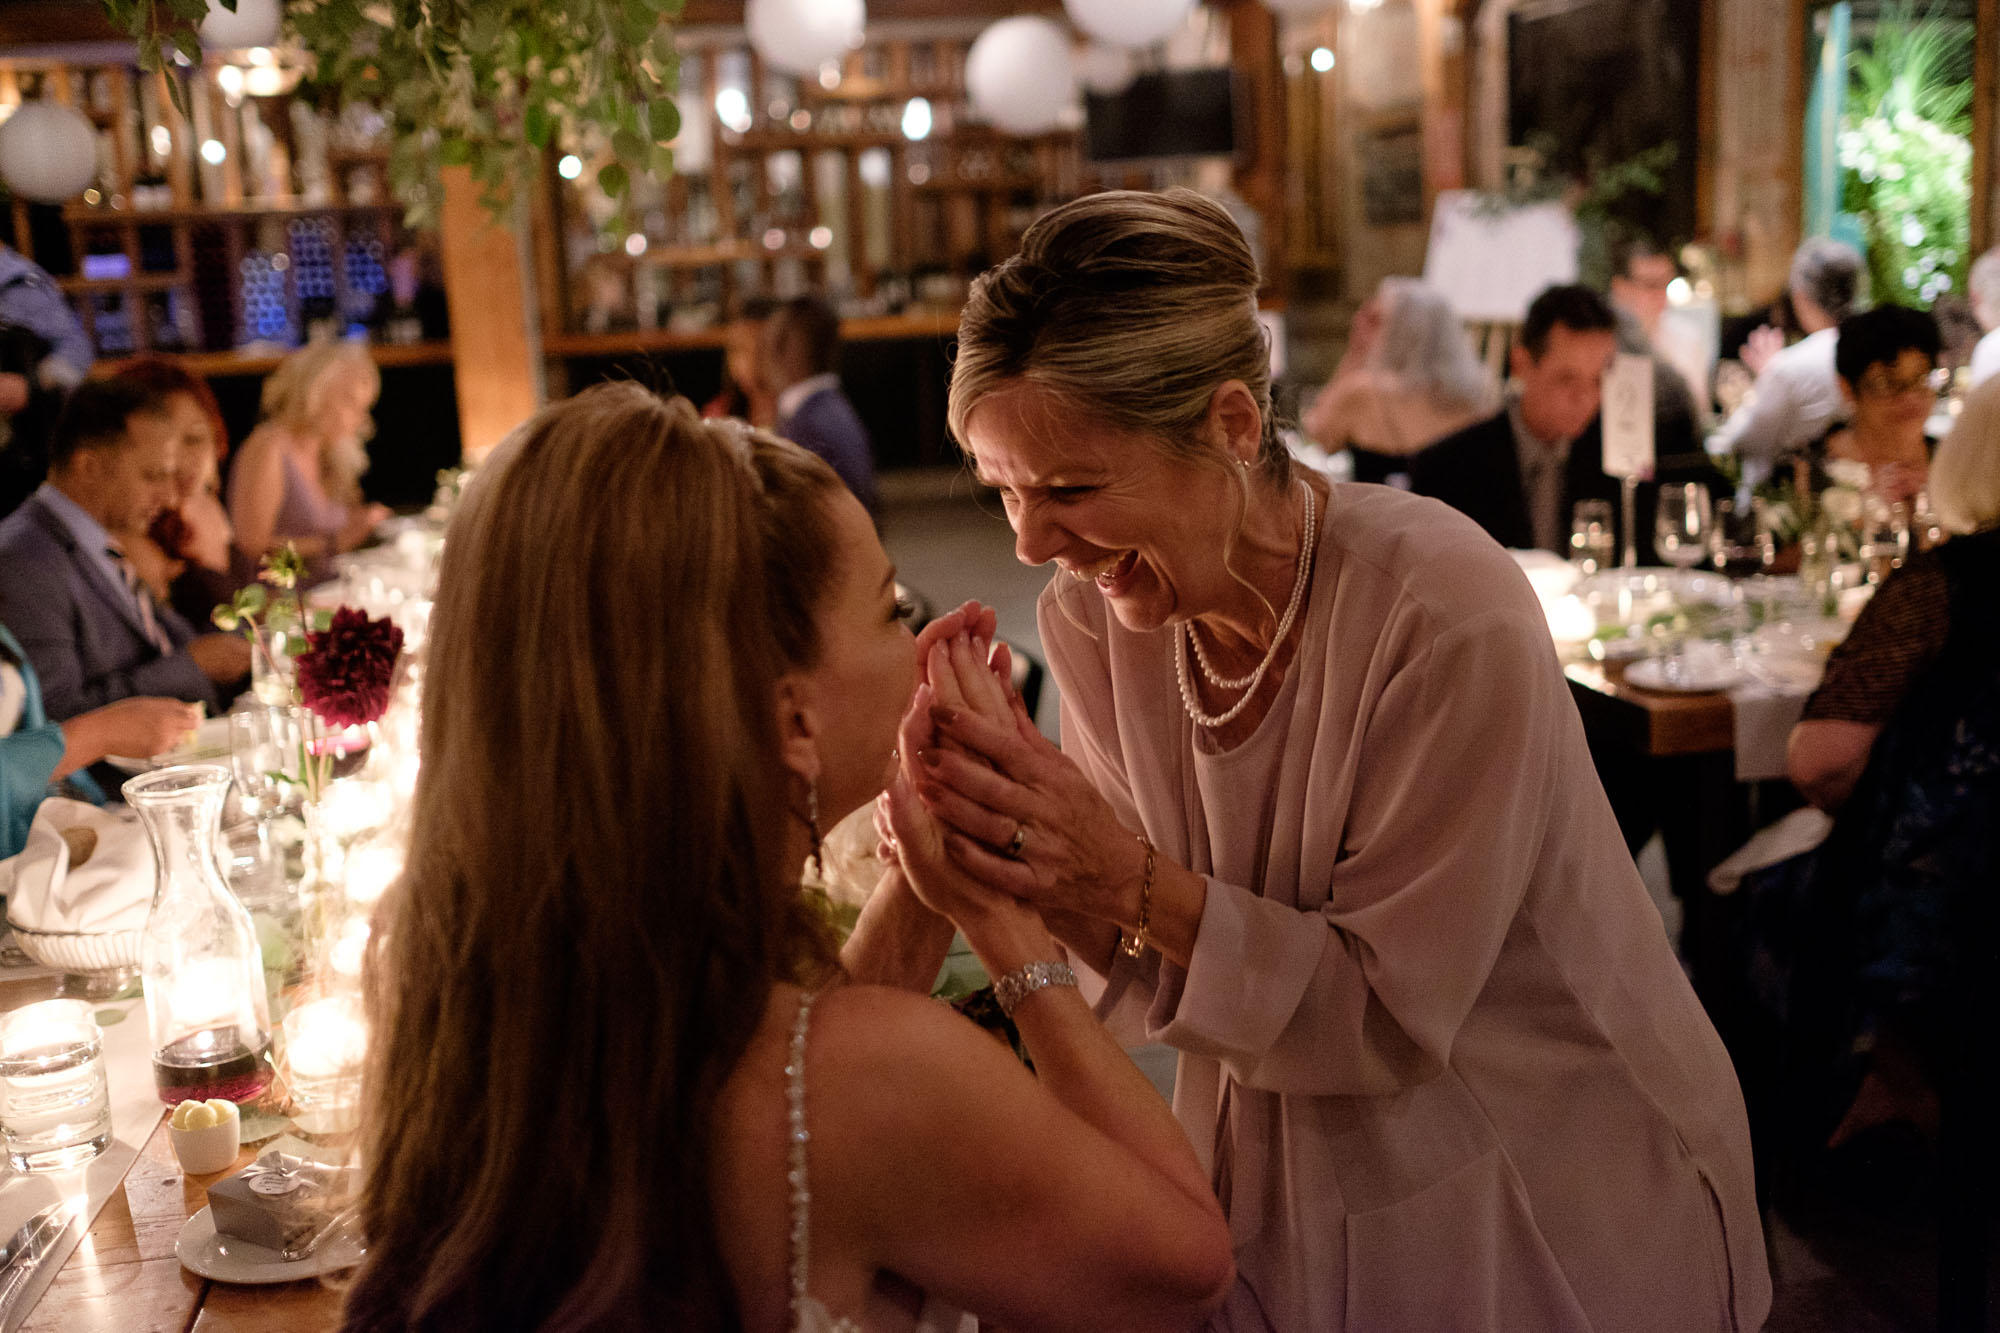 Cindy and one of her guests share a laugh during their wedding reception at Archeo in the Distillery District.